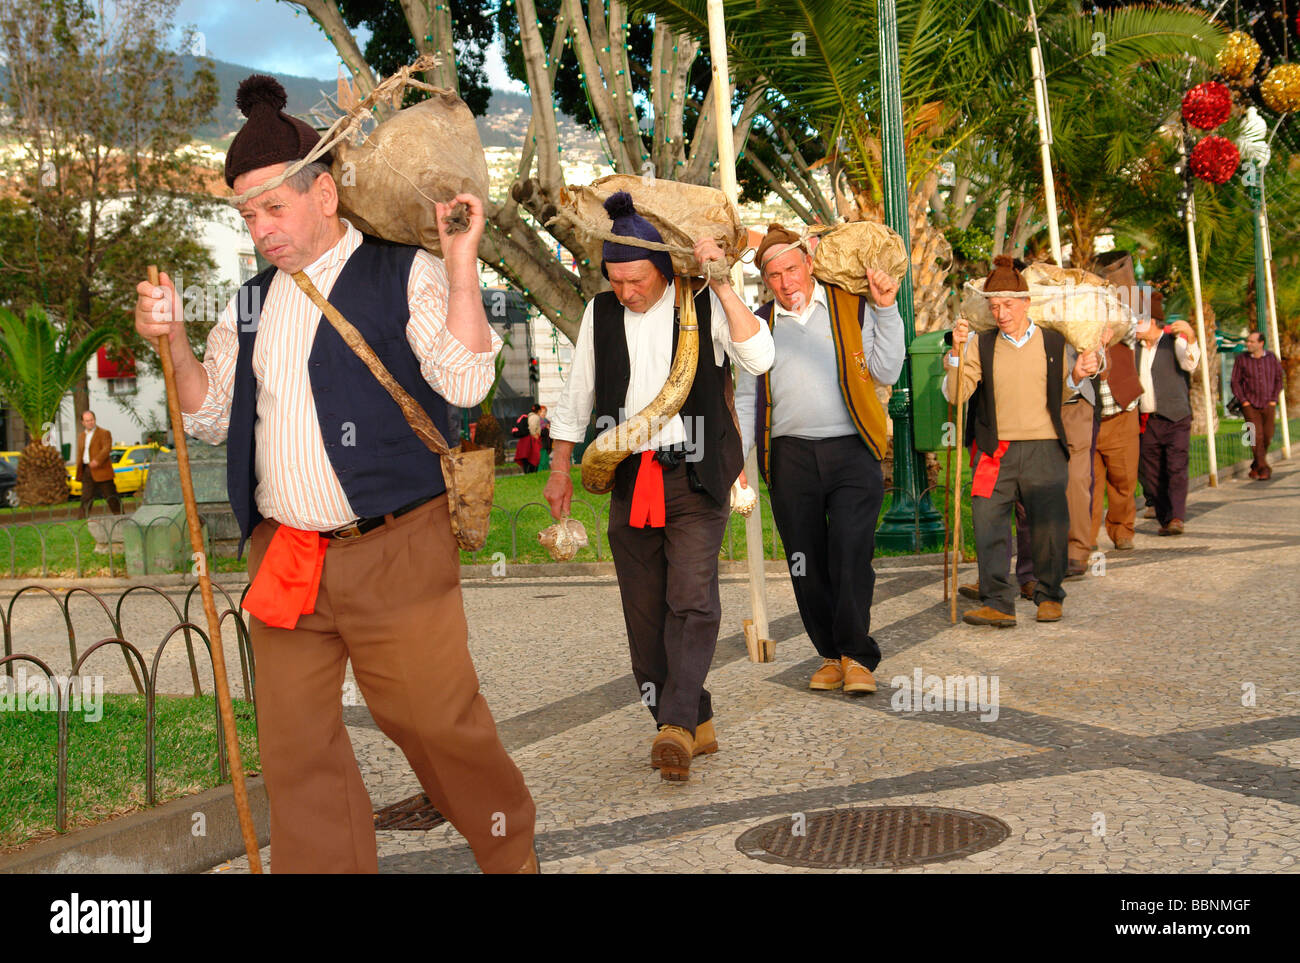 geography / travel, Portugal, Madeira, Funchal: Islanders from a Porto da Cruz folklore-group carrying wineskins, - Stock Image